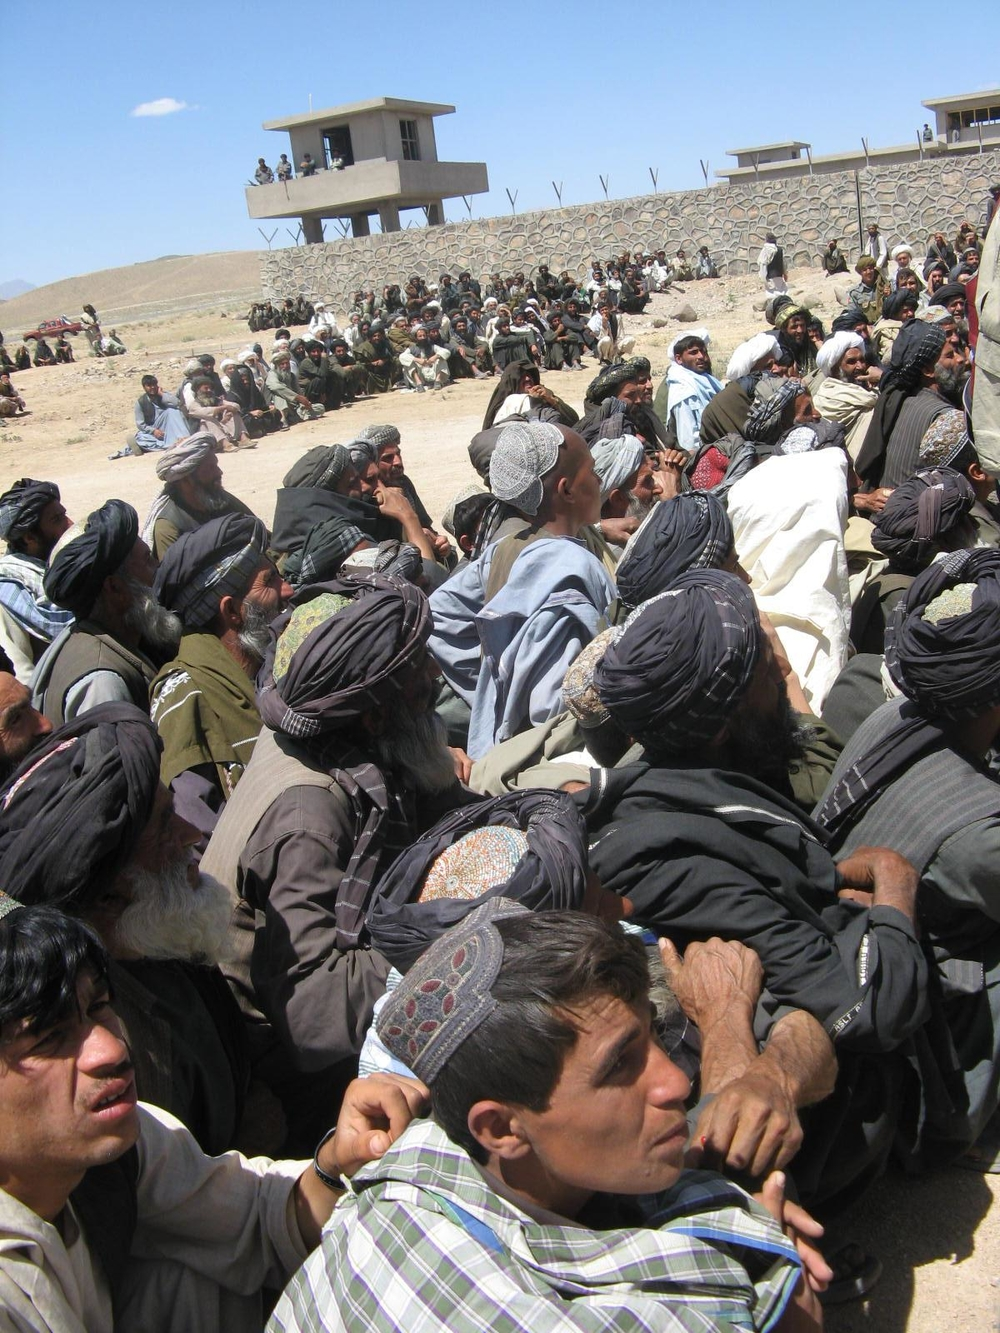 Prevalent unemployment, poverty and illiteracy force some Afghan youths to drug addiction, illegal migration or to the arms of the insurgents, experts say